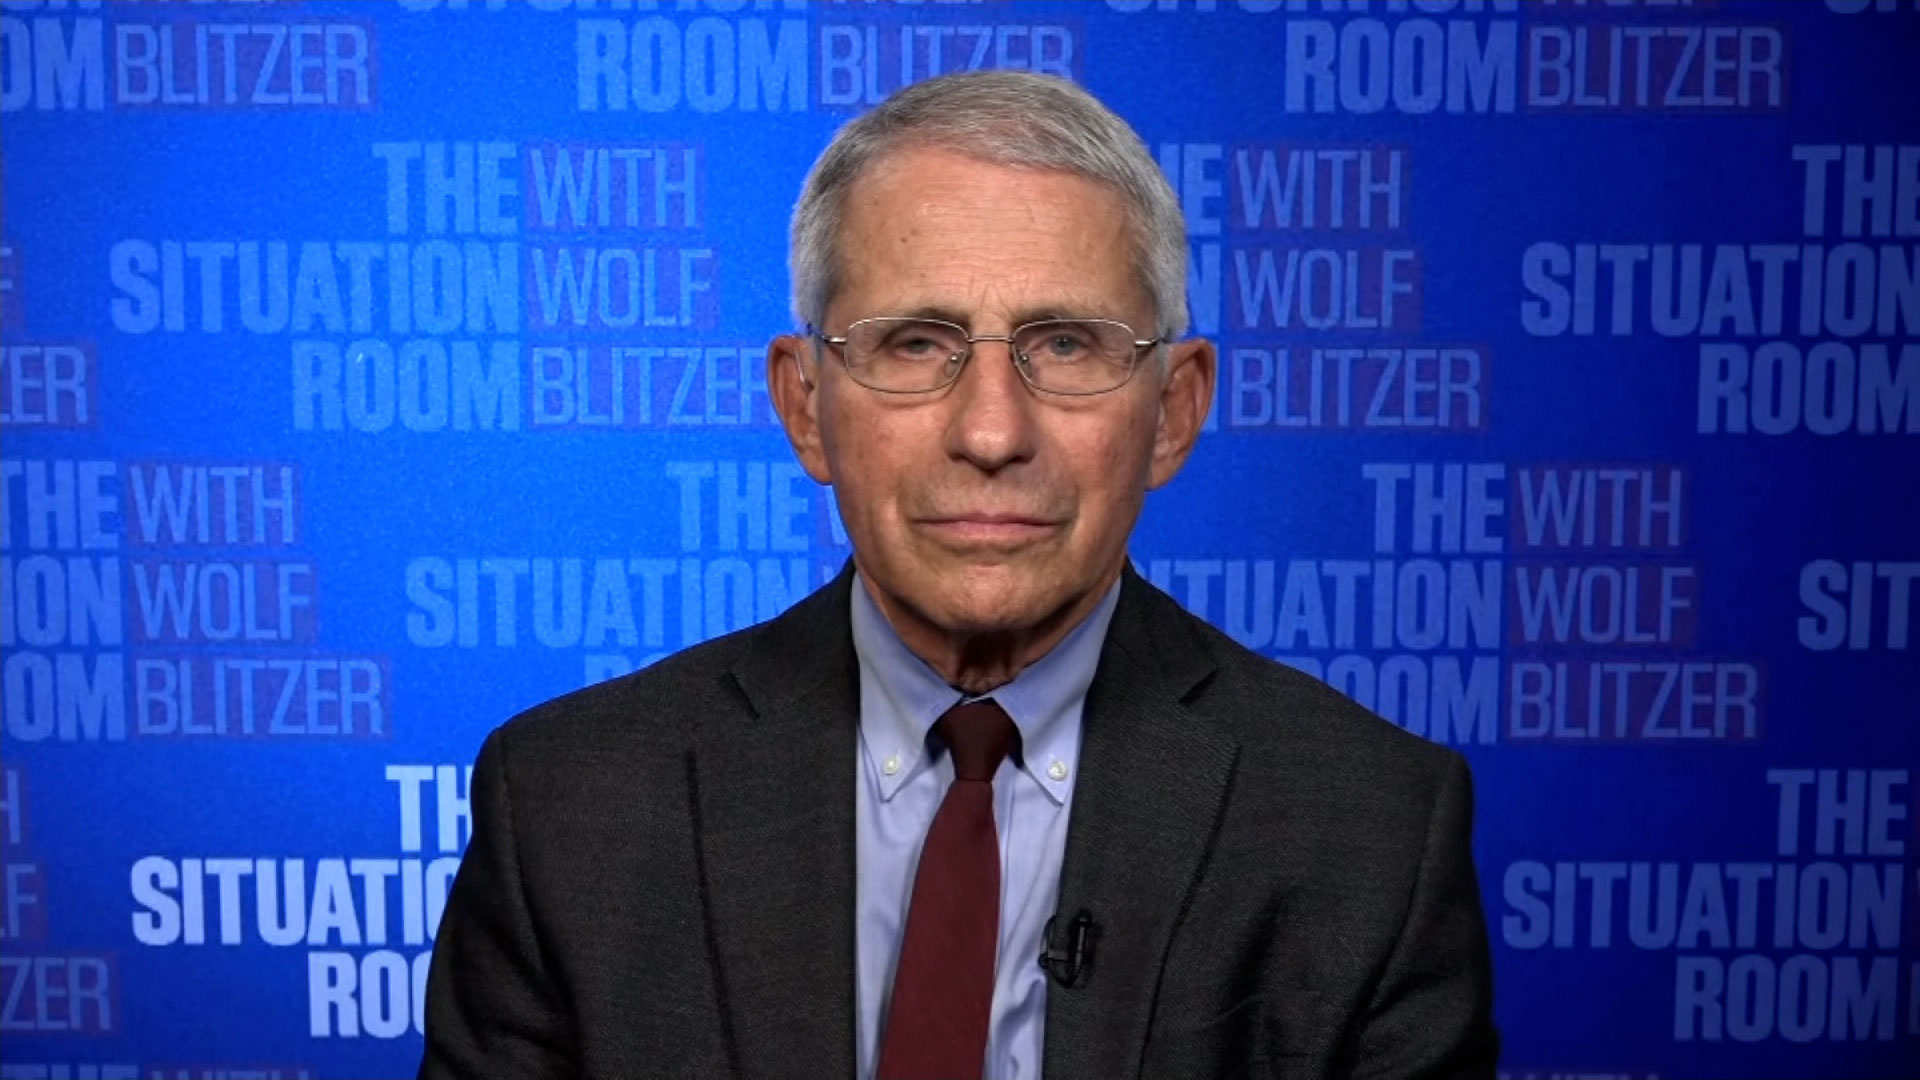 Dr. Anthony Fauci, director of the NationalInstitute of Allergy andInfectious Diseases, on July 9, 2021.